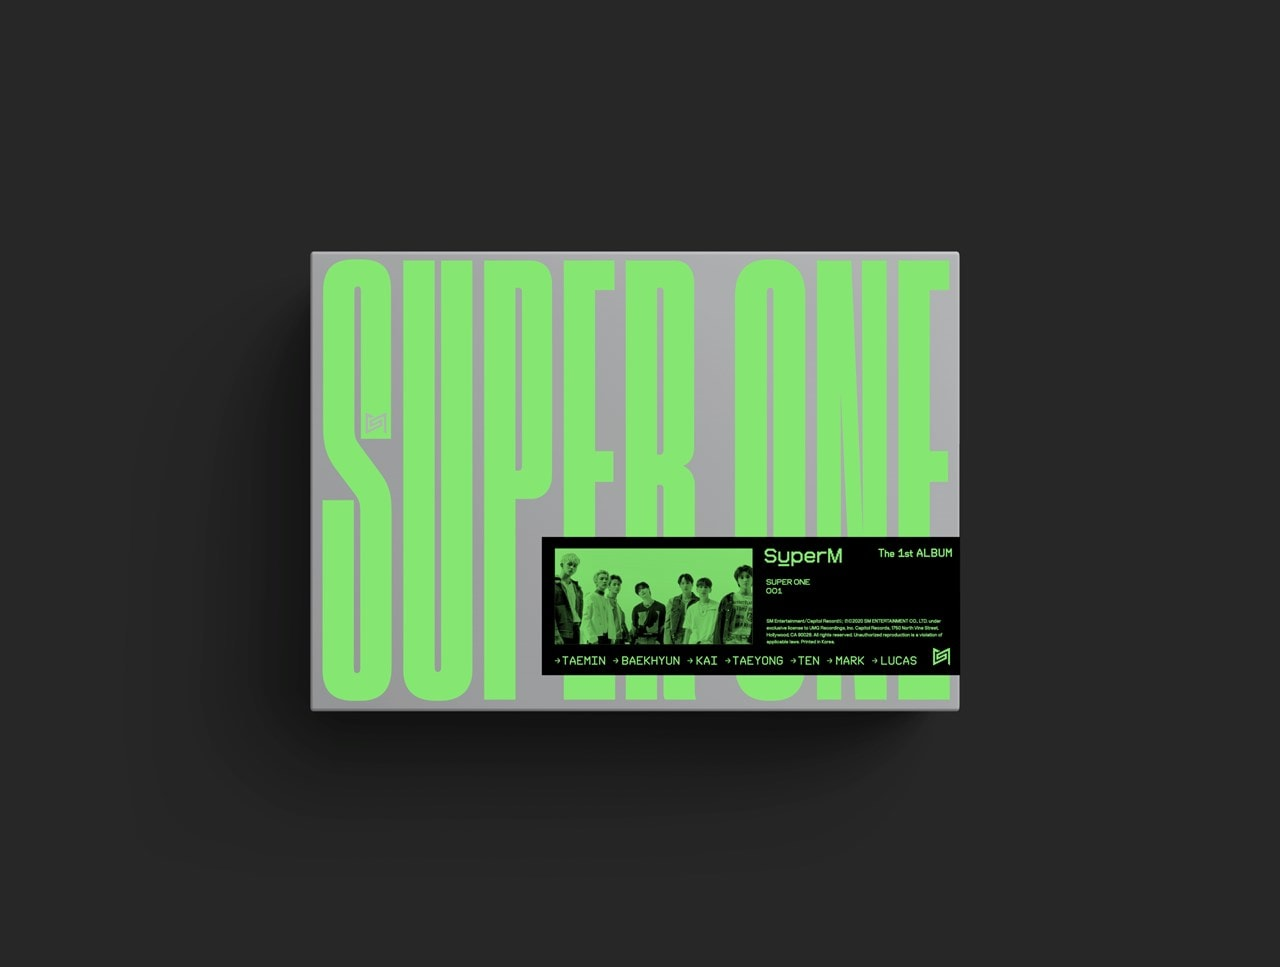 The 1st Album - Super One (One Ver.) - 1